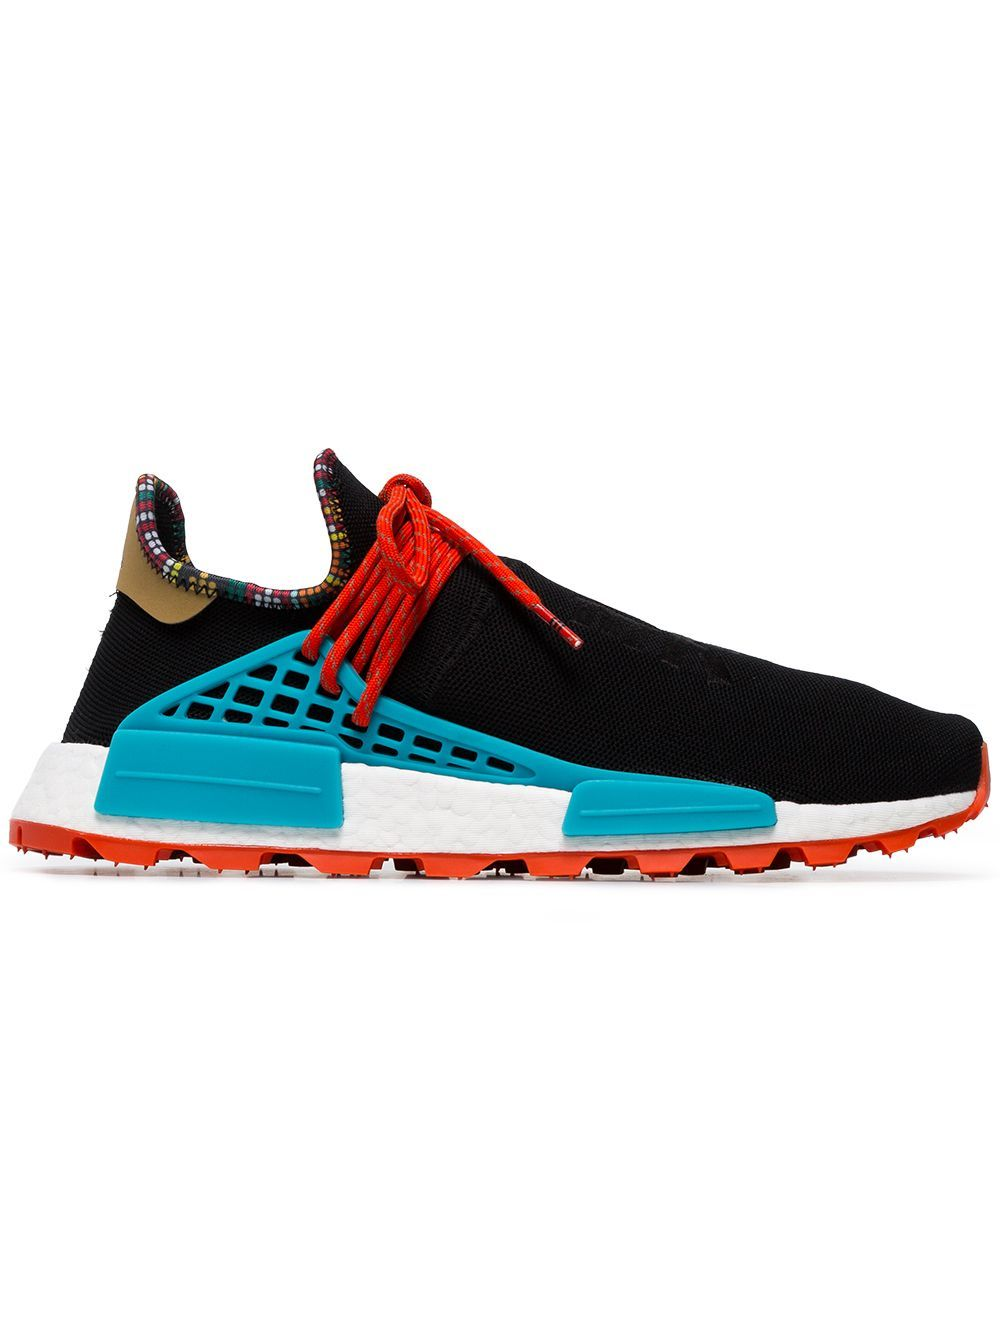 e6a1471270bc ADIDAS ORIGINALS ADIDAS X PHARRELL WILLIAMS BLACK HUMAN BODY NMD SNEAKERS -  黑色.  adidasoriginals  shoes